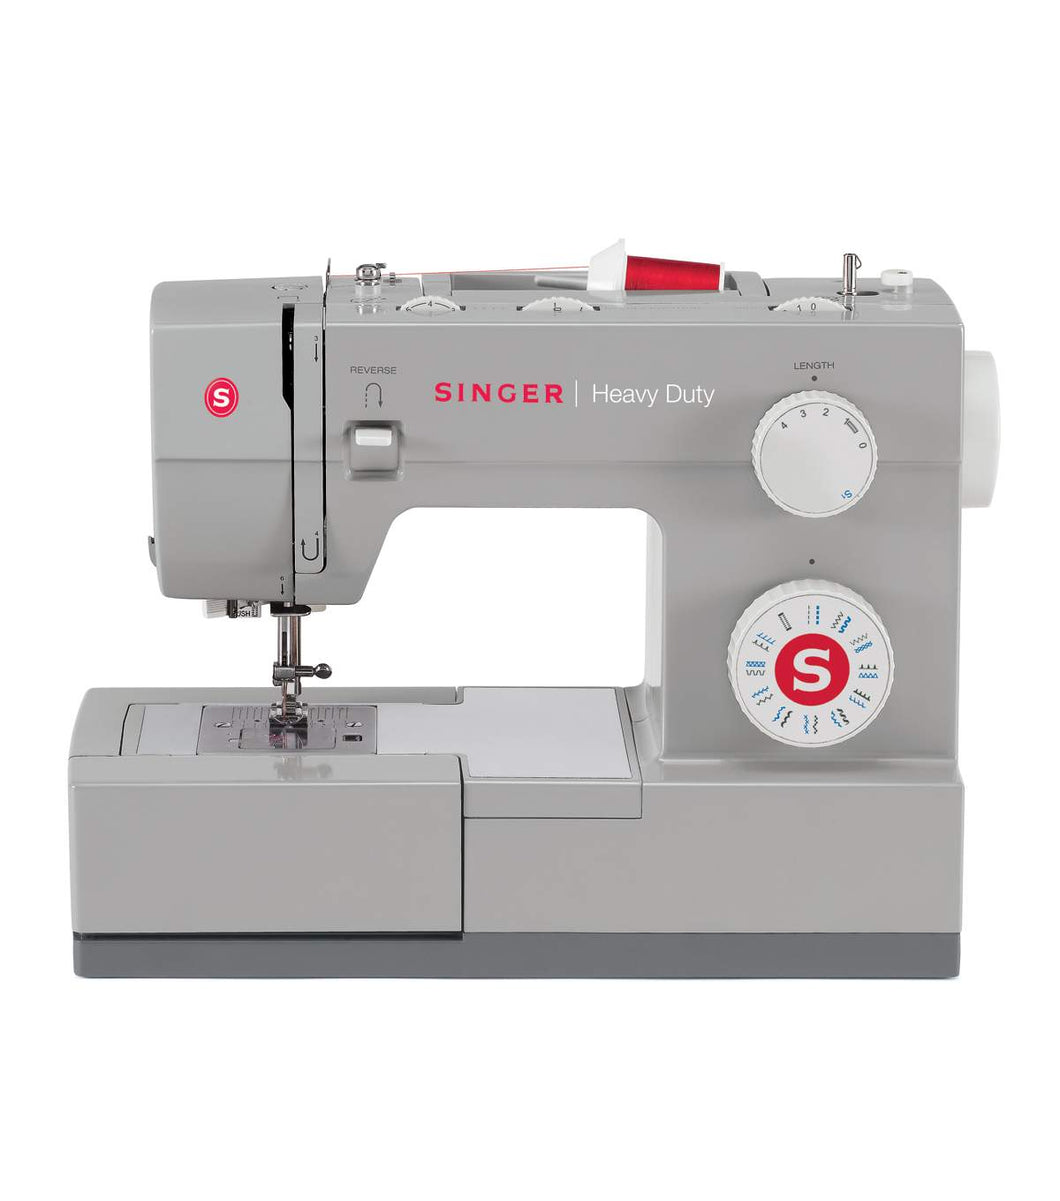 SINGER Heavy Duty Sewing Machine 4423